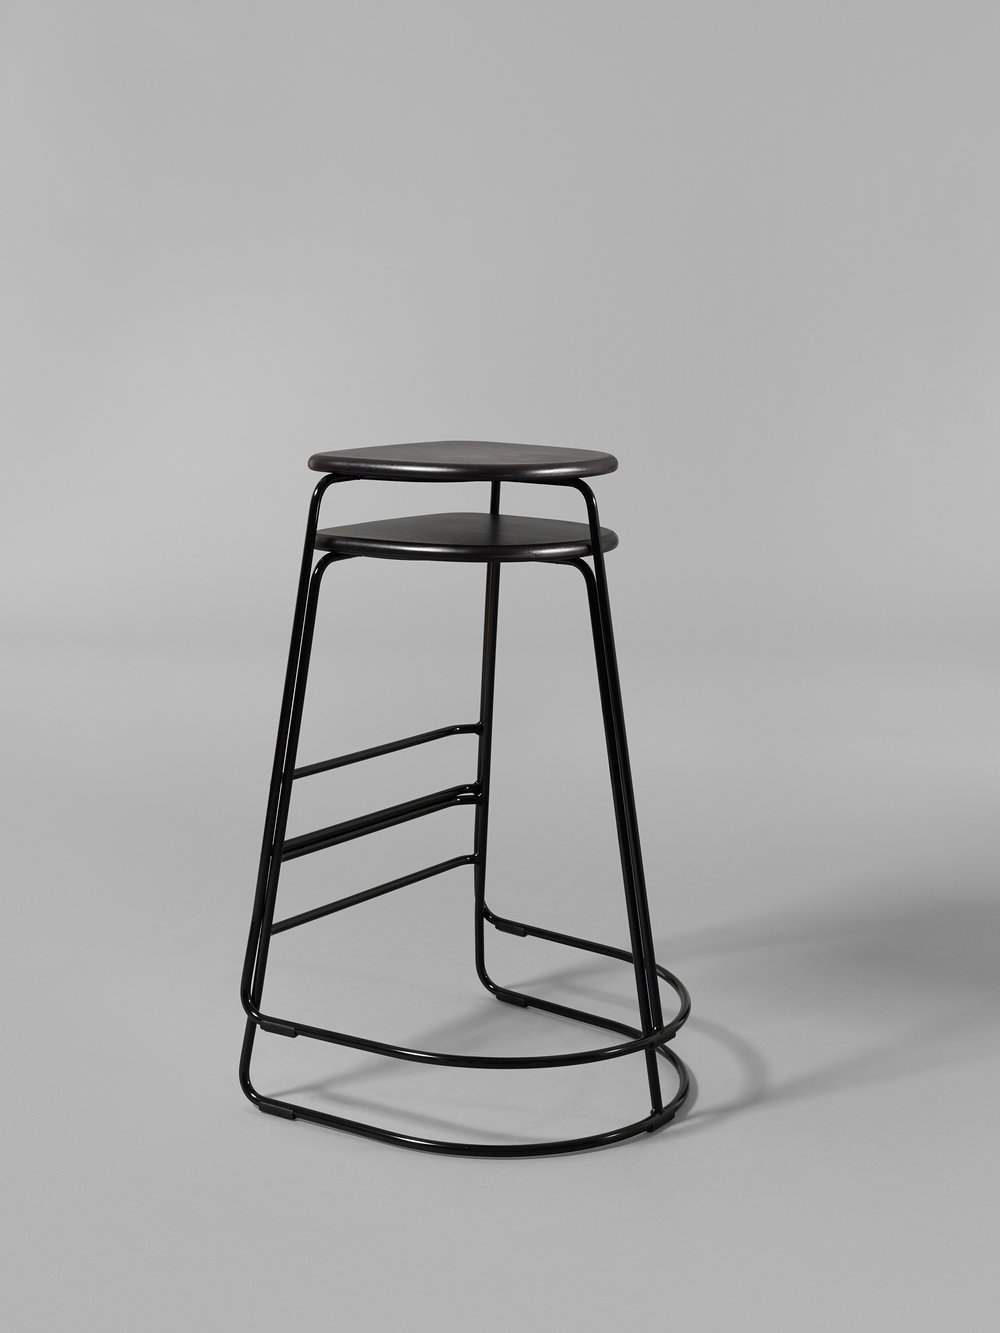 Citizen Ghost is a straight-forward, stackable stool with strong character. The look resembles that of a ghost, wandering the earth in search for souls to keep. Even though, or perhaps because of, its simplicity the stool has an unmistakeable look. The stack-ability makes is additionally usable in areas where seating spaces and room space takes turn. The seating comfort is high, combining the steel's lightness and strength with the solid wood's warmth and comfort.